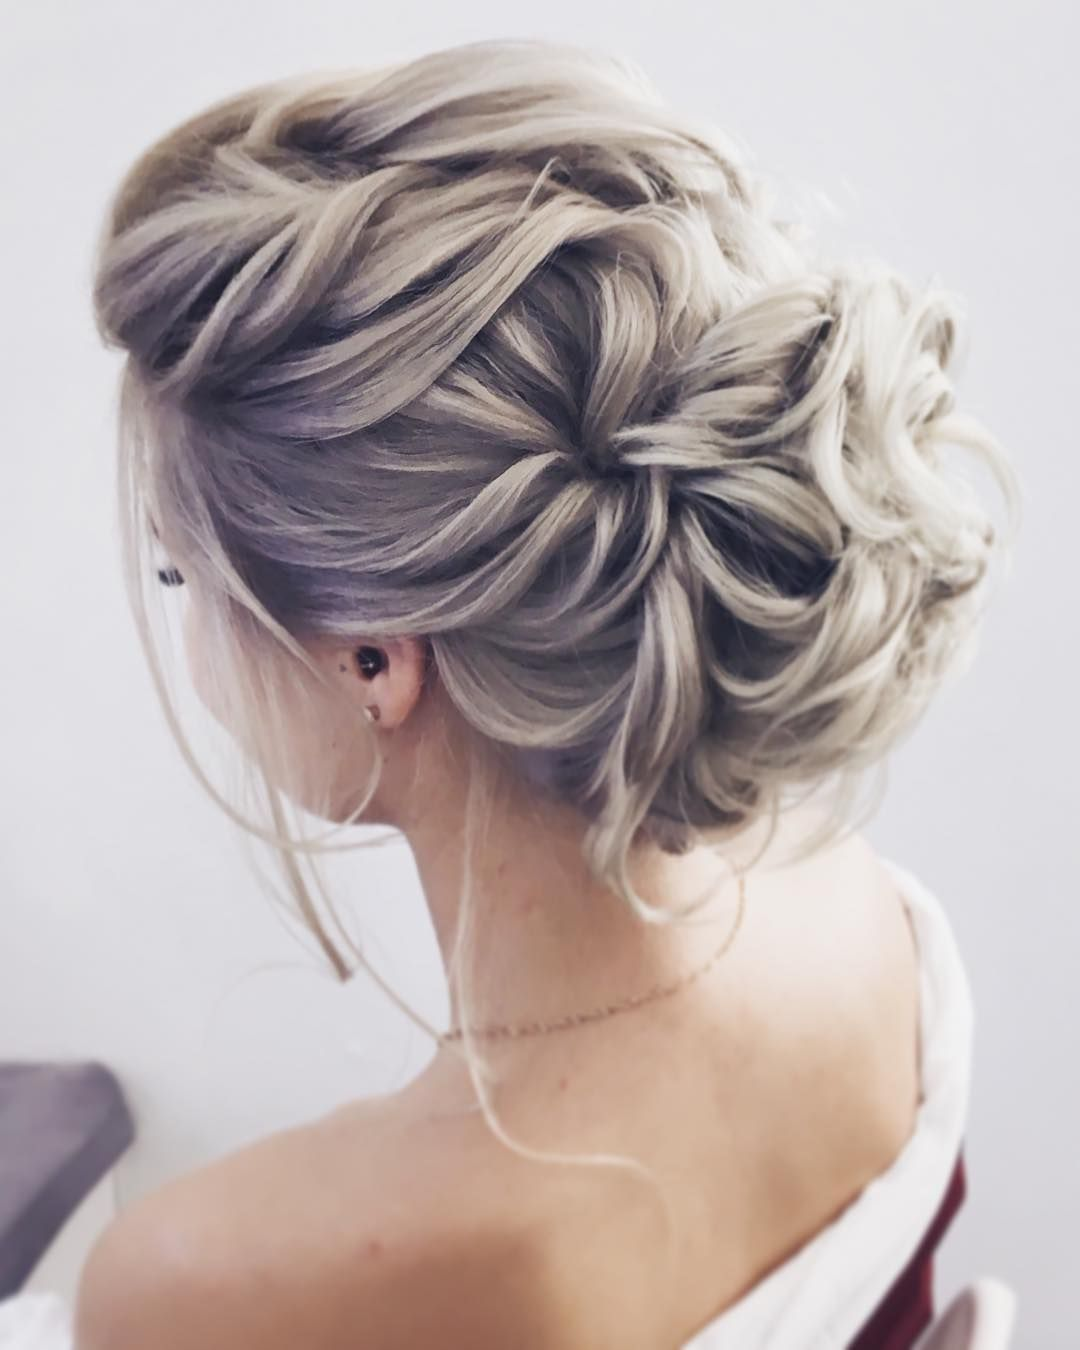 Messy Bridal Updo Hairstyles Hairstyles Updos Wedding Hairstyle Ideas Messy Wedding Updo Hairstyl Easy Hair Updos Romantic Updo Hairstyles Medium Hair Styles